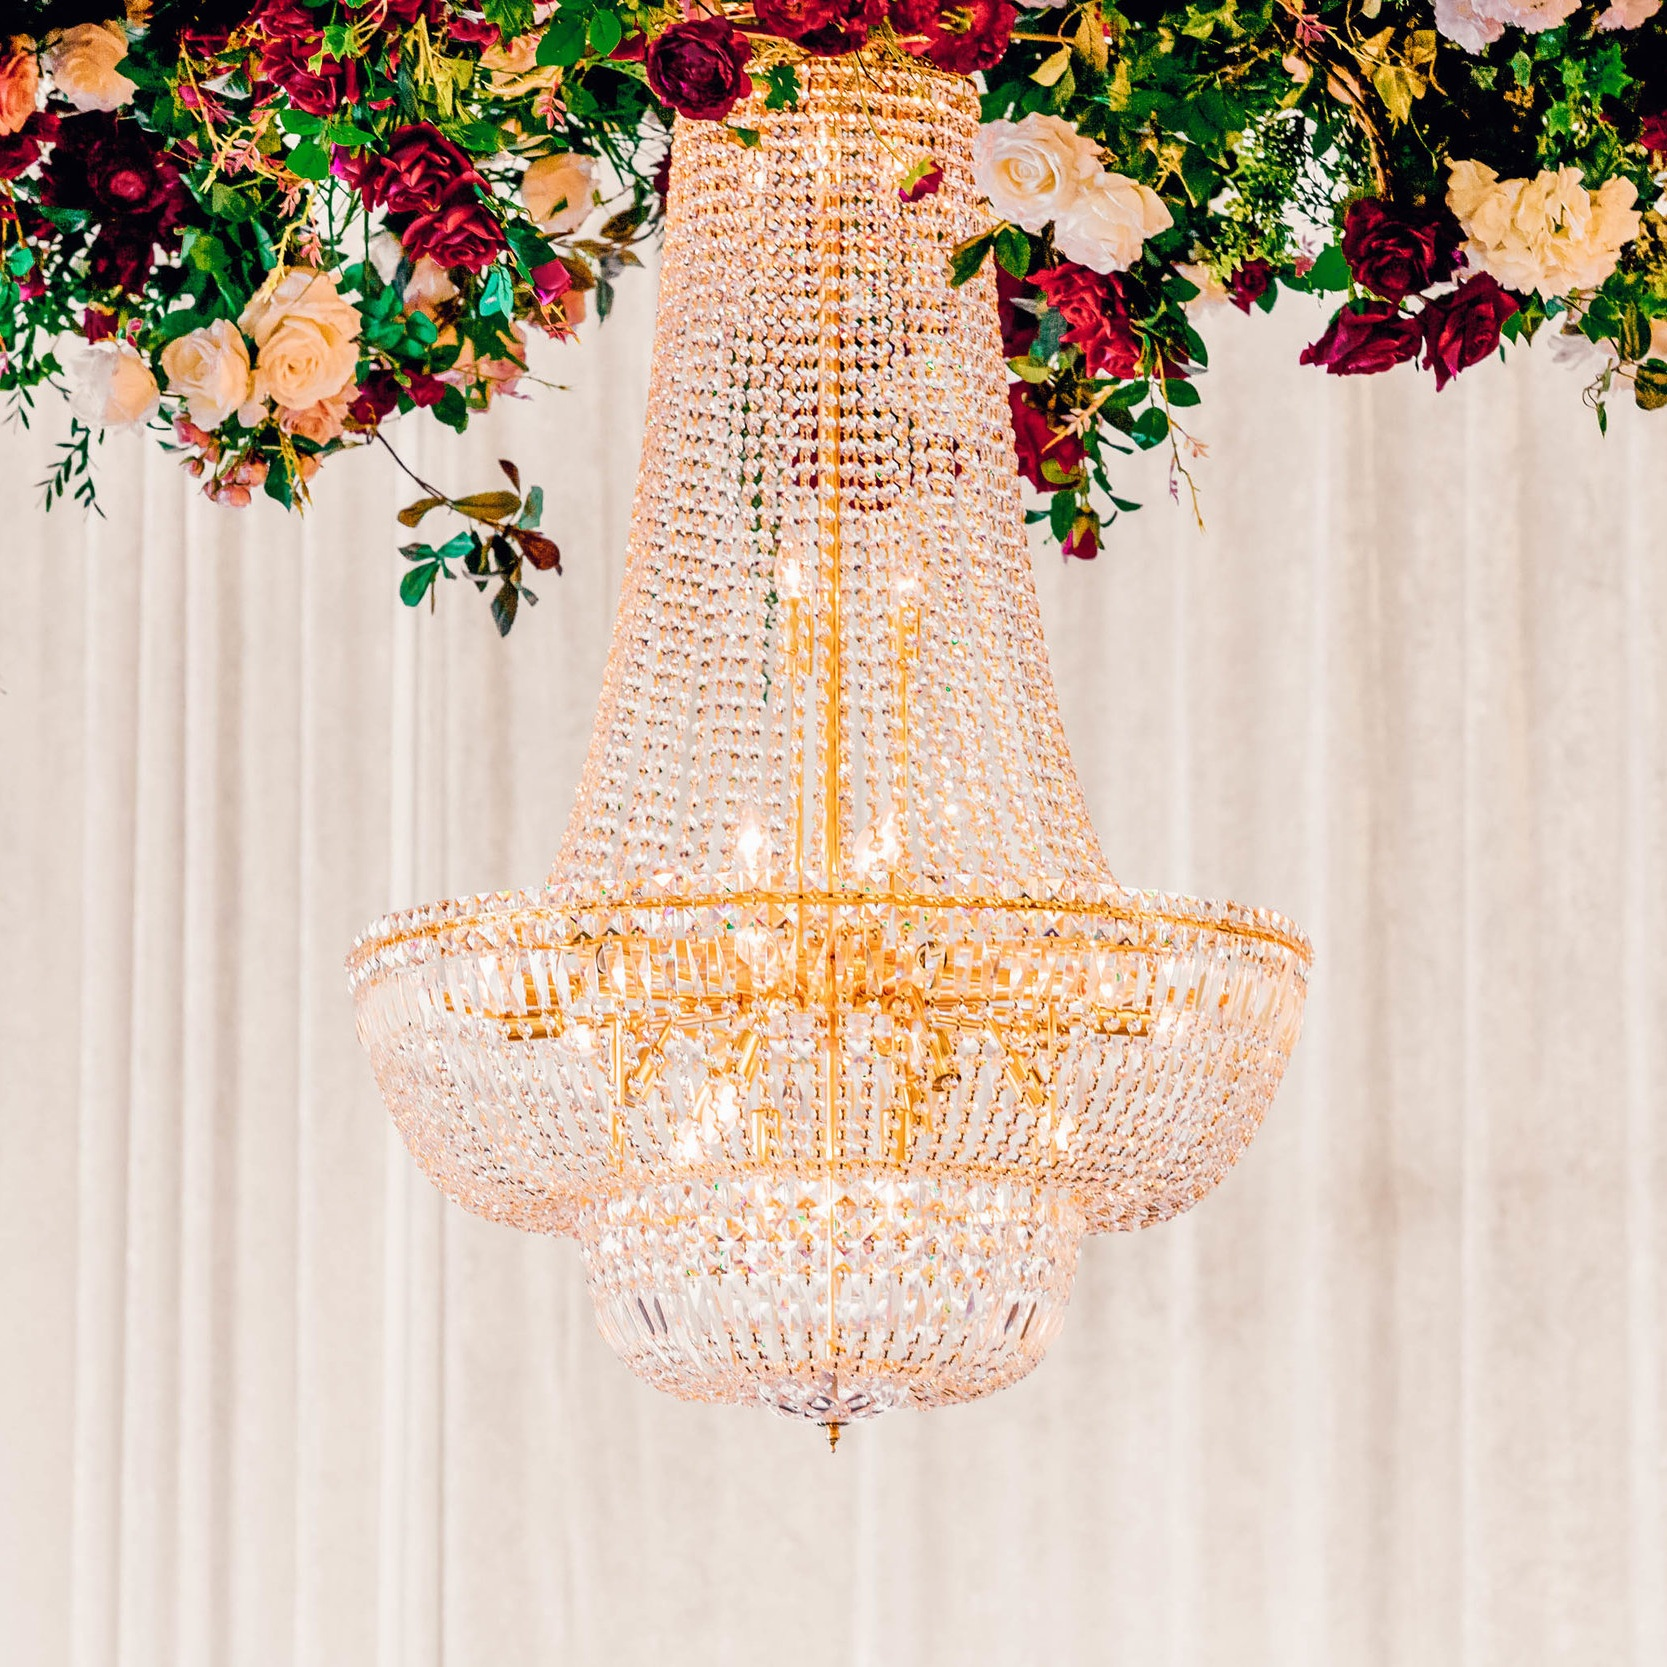 luxe chandeliers for hire